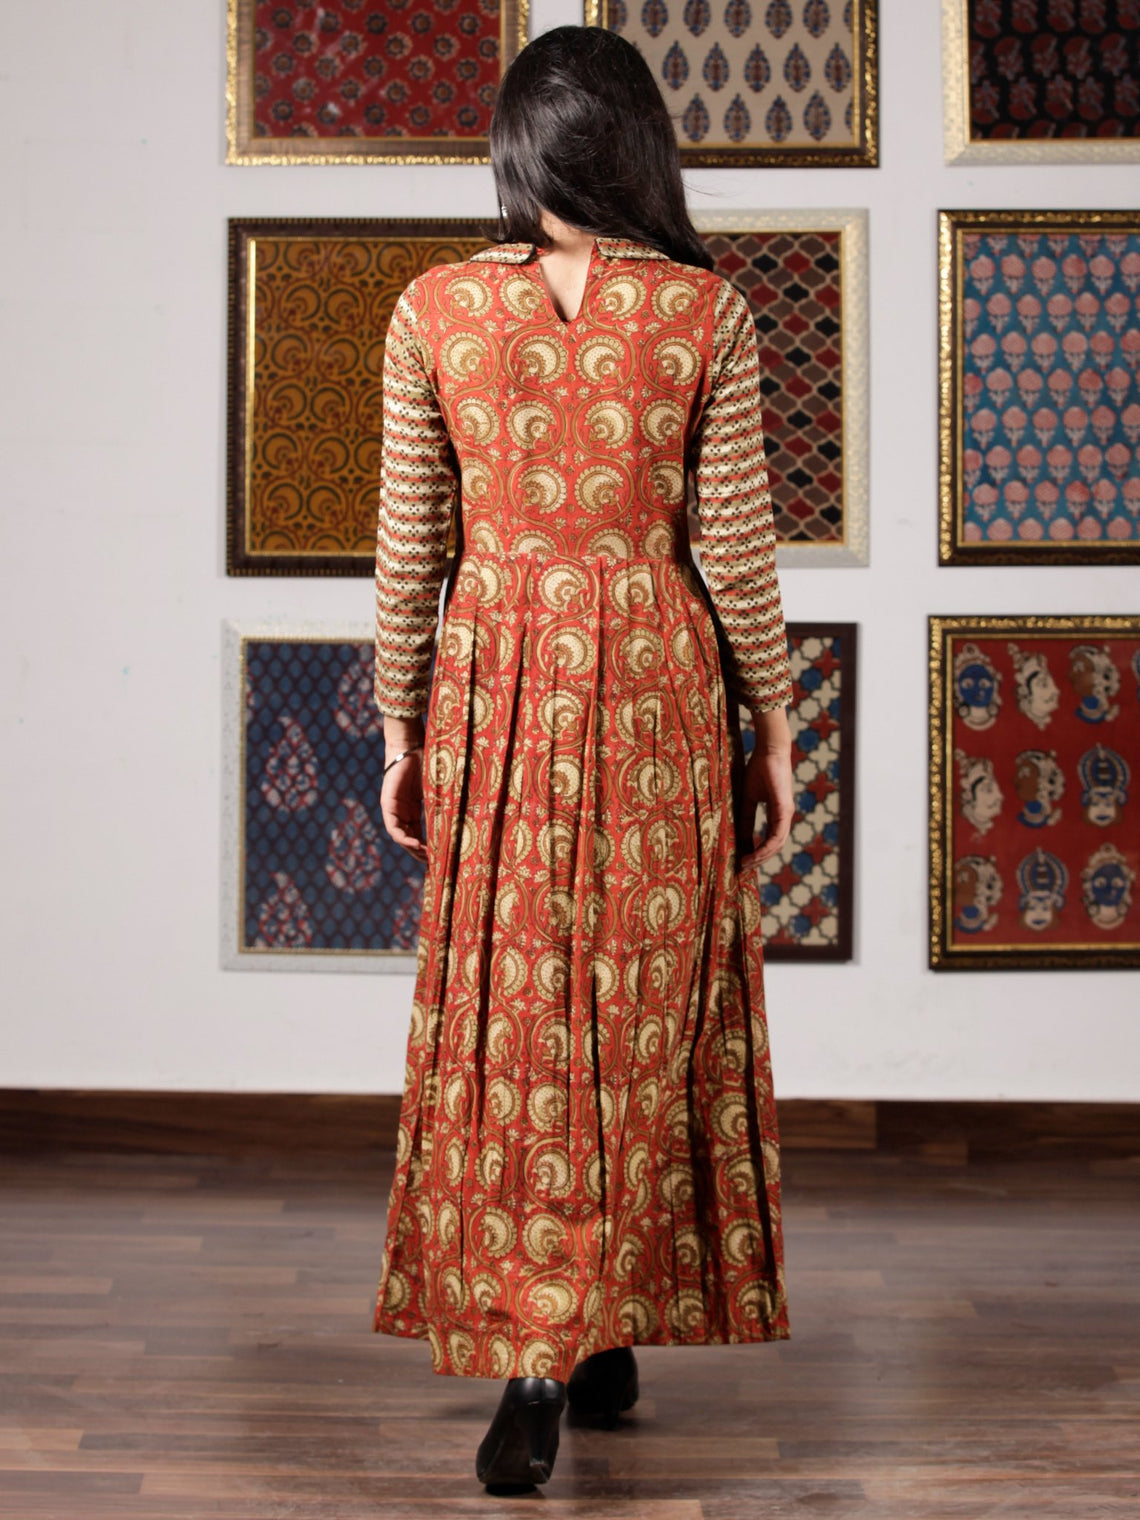 Red Olive Green Black Hand Block Printed Cotton Long Dress With Knife Pleats and side pockets - D258F992